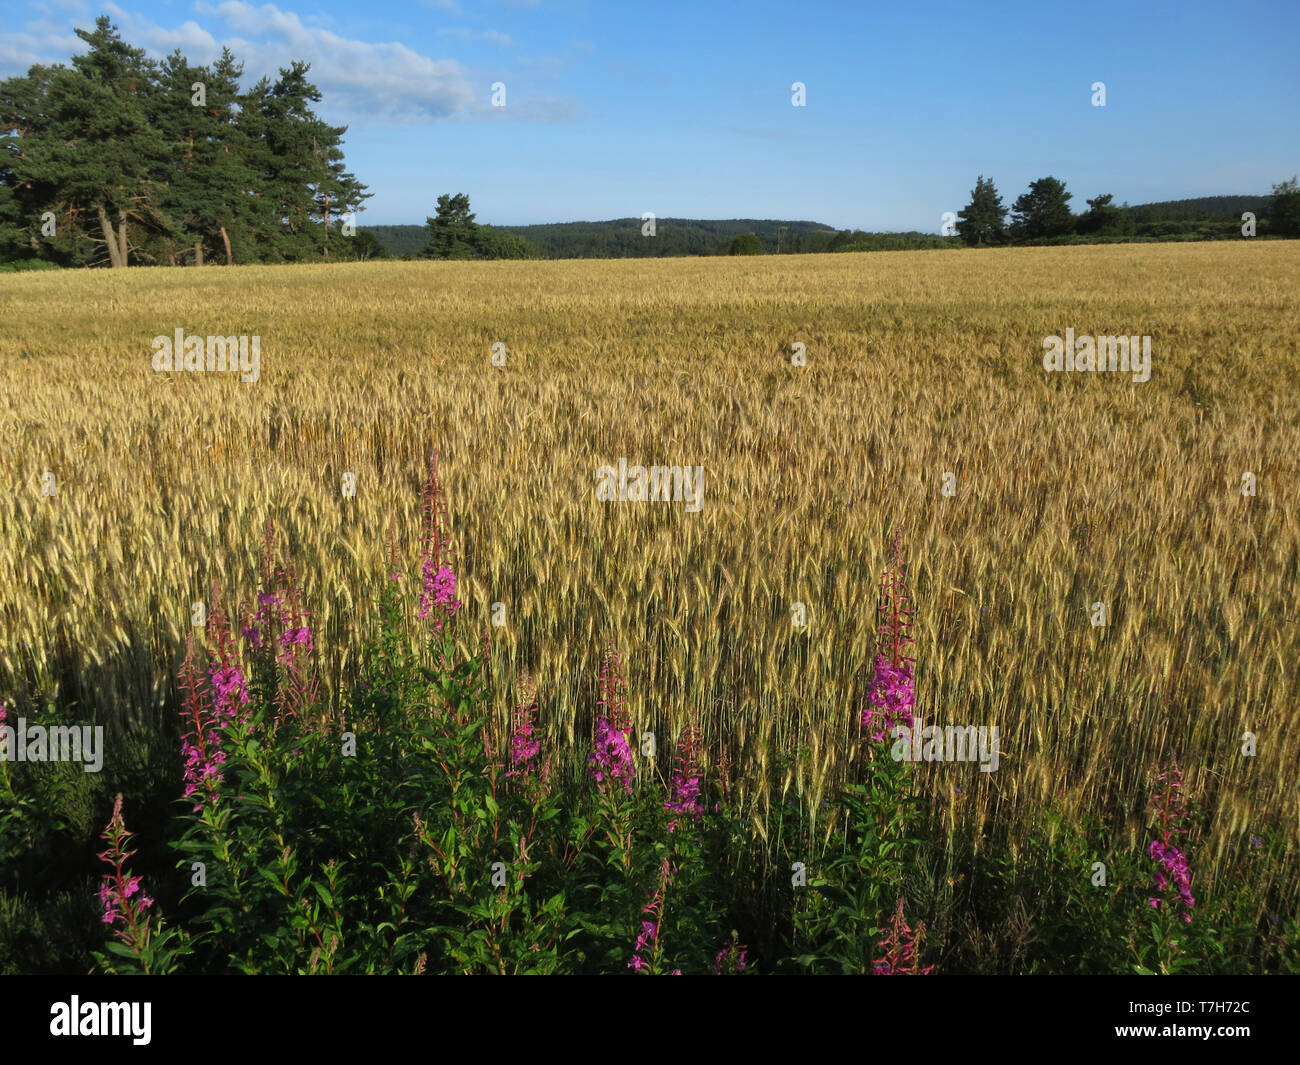 Wheat field along the GR 65, Via Podiensis, also know as Le Puy Route, in southern France. French part of the Camino de Santiago. - Stock Image